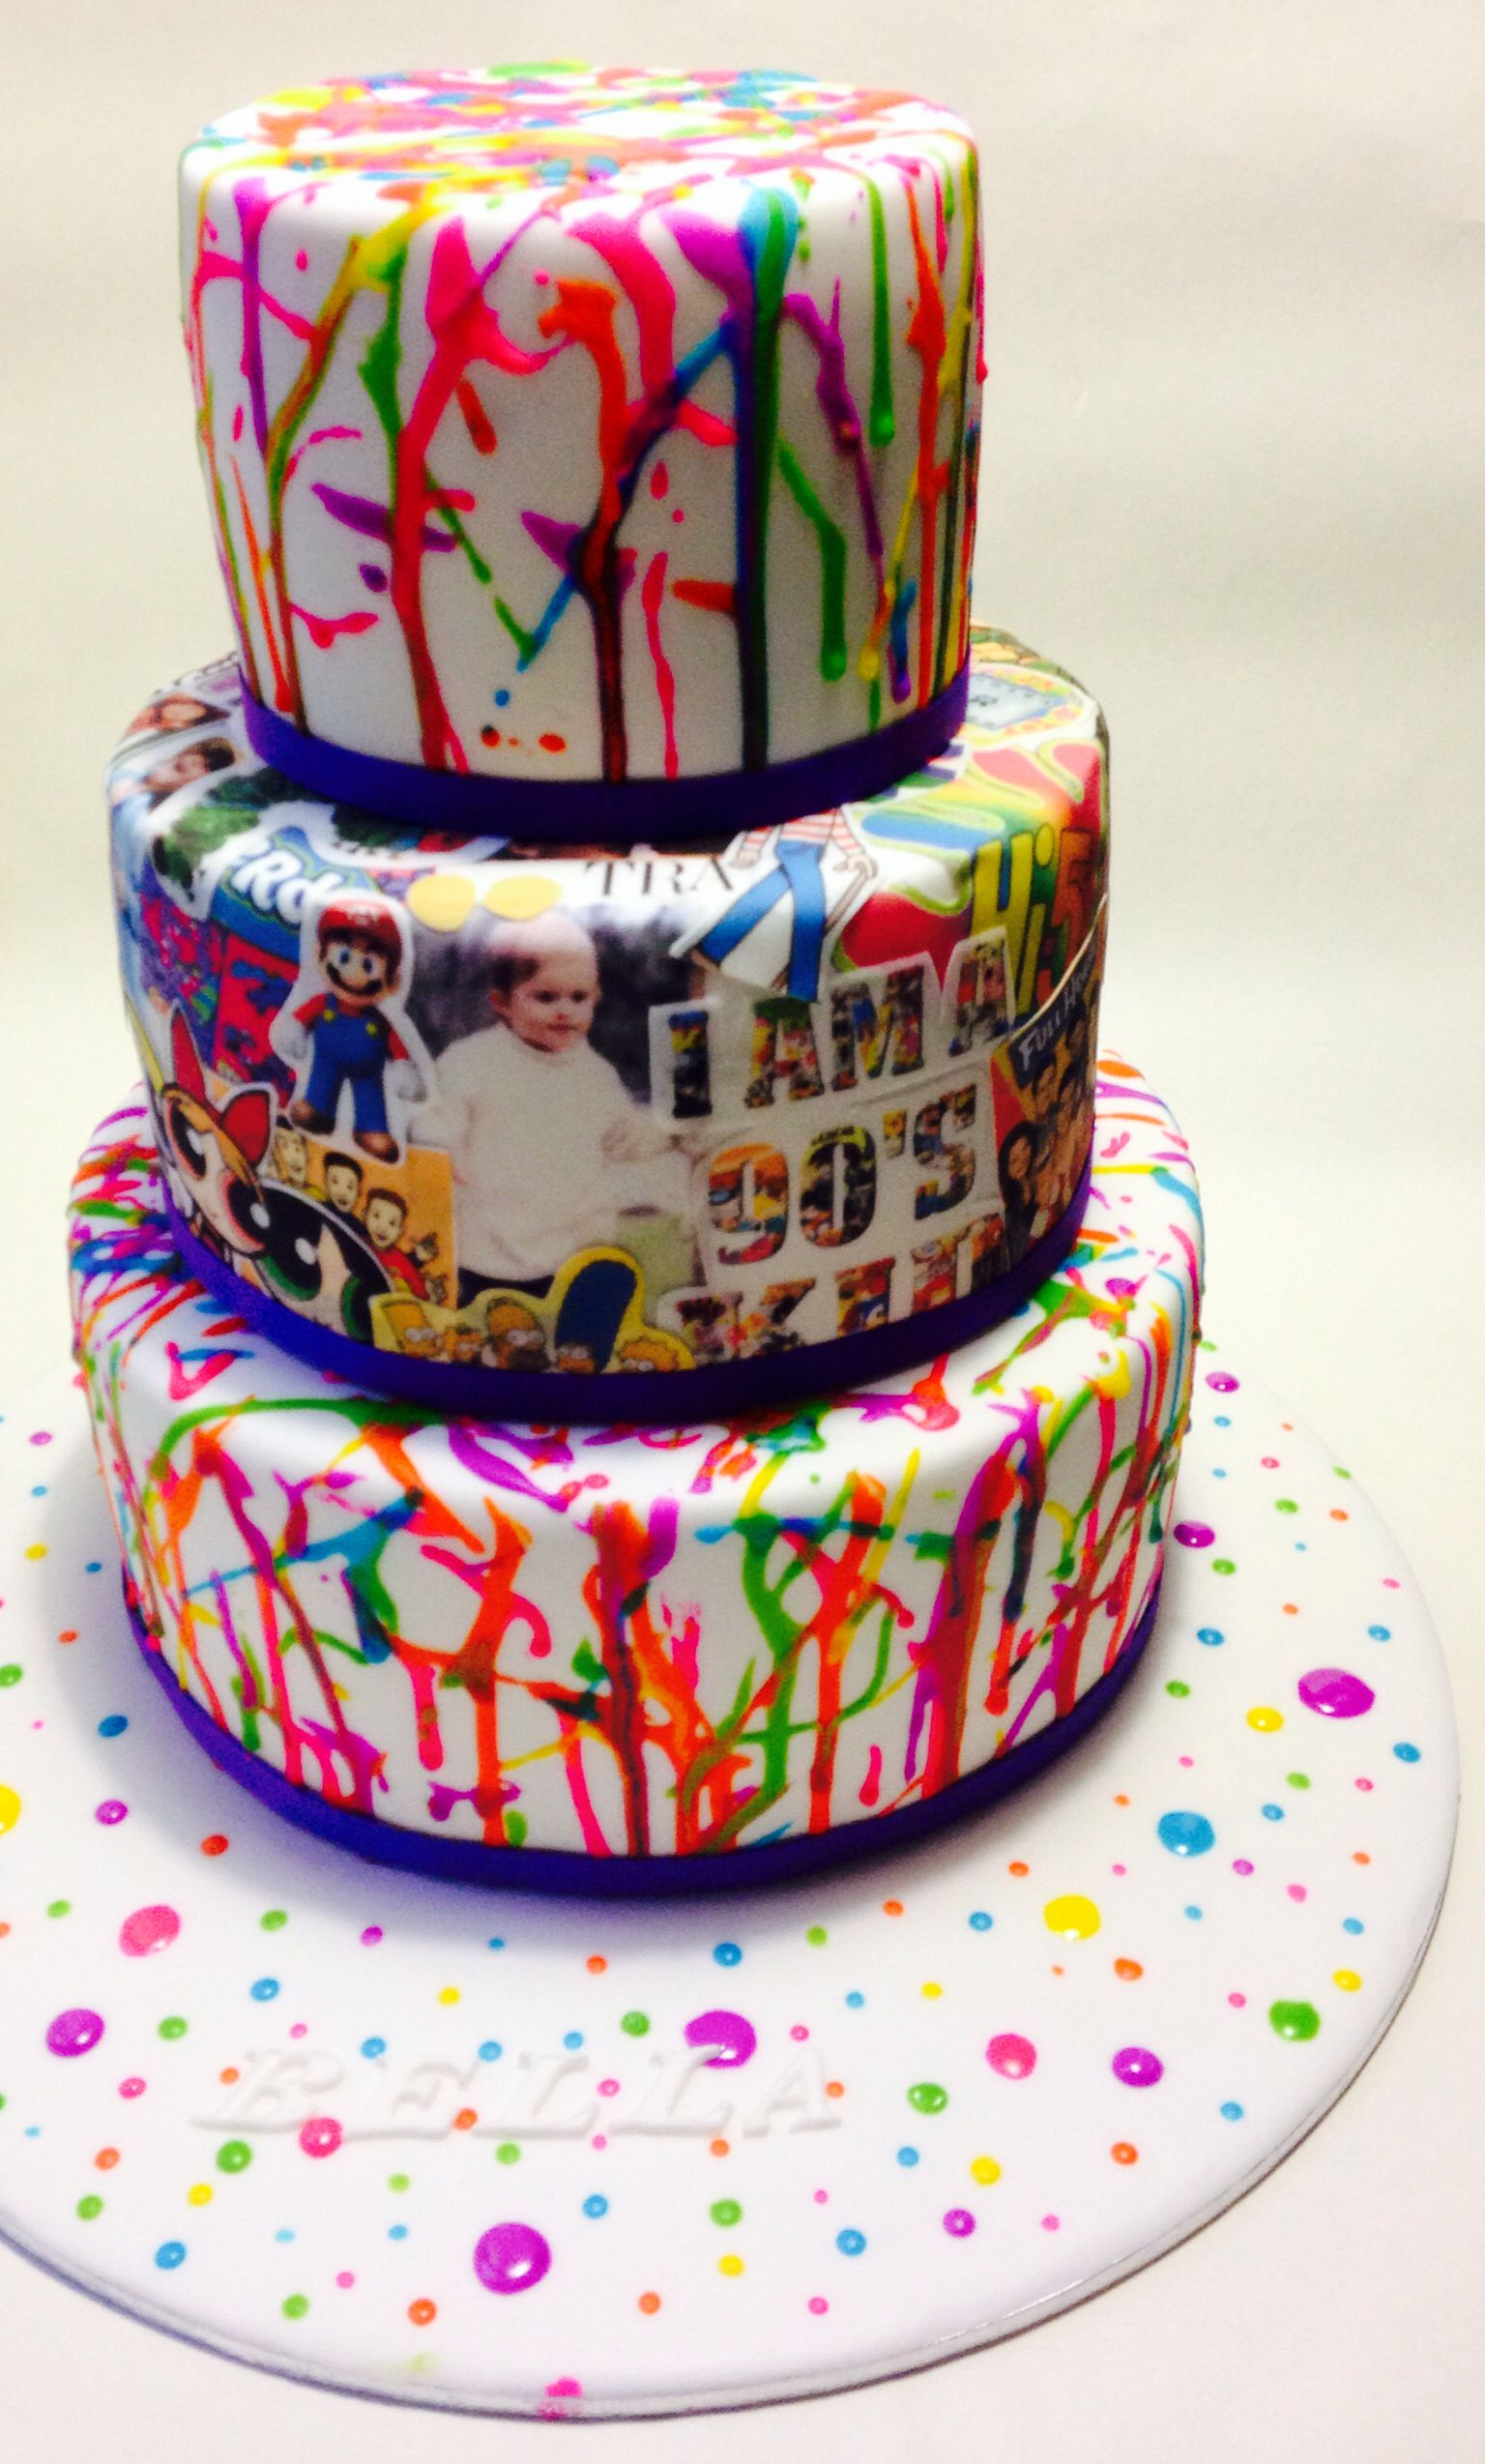 90s themed 21st birthday cake 3 tiered Mud cake covered in